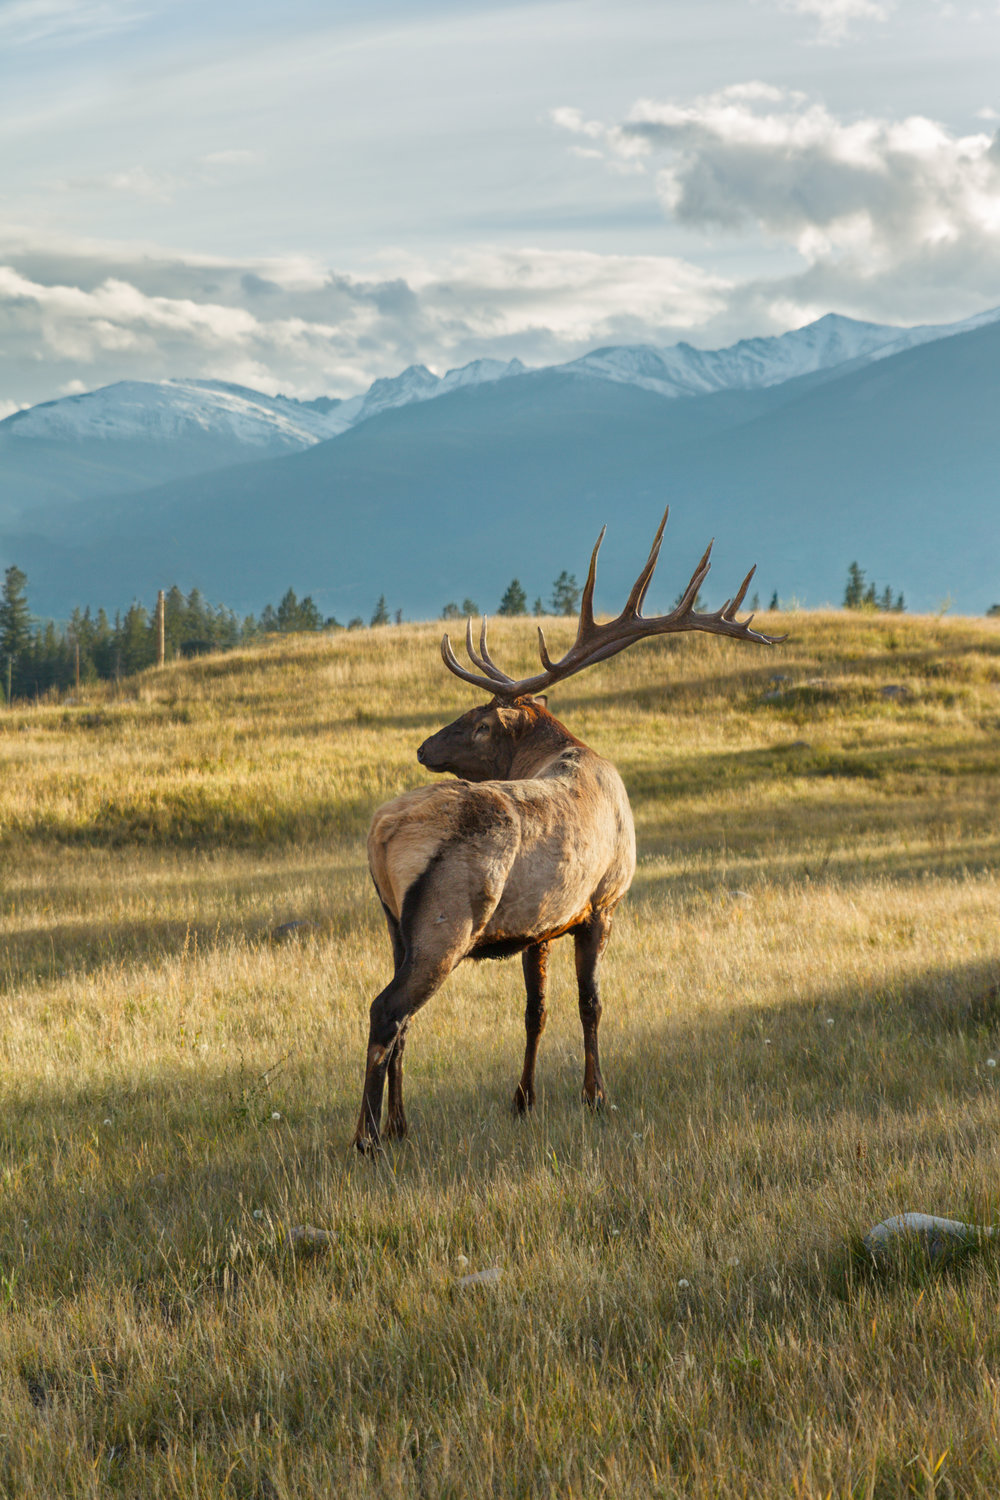 16-Point-Elk-Mountains.jpg